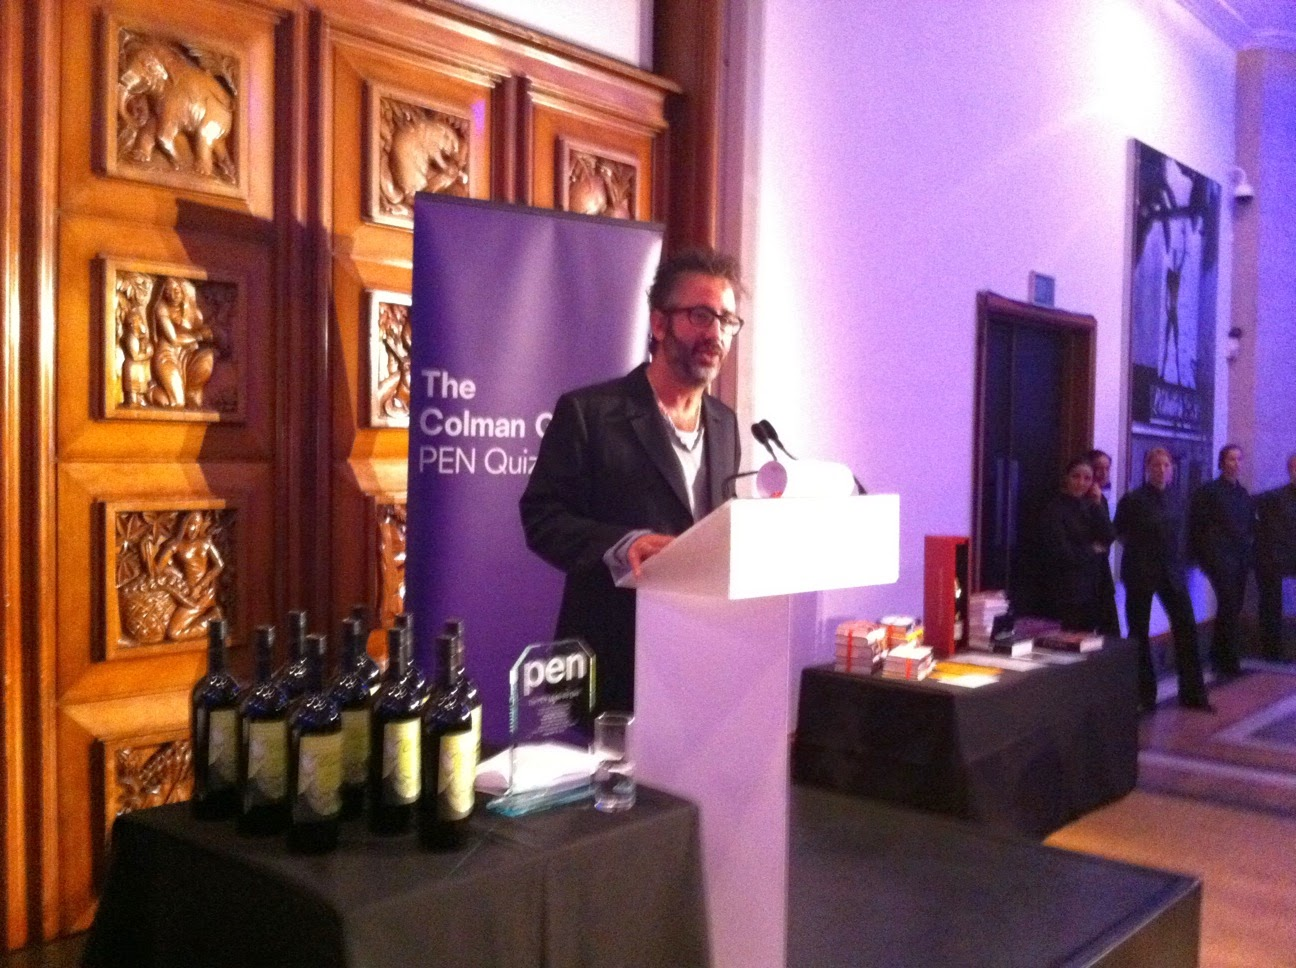 English Pen Quiz 2010 at RIBA with David Baddiel